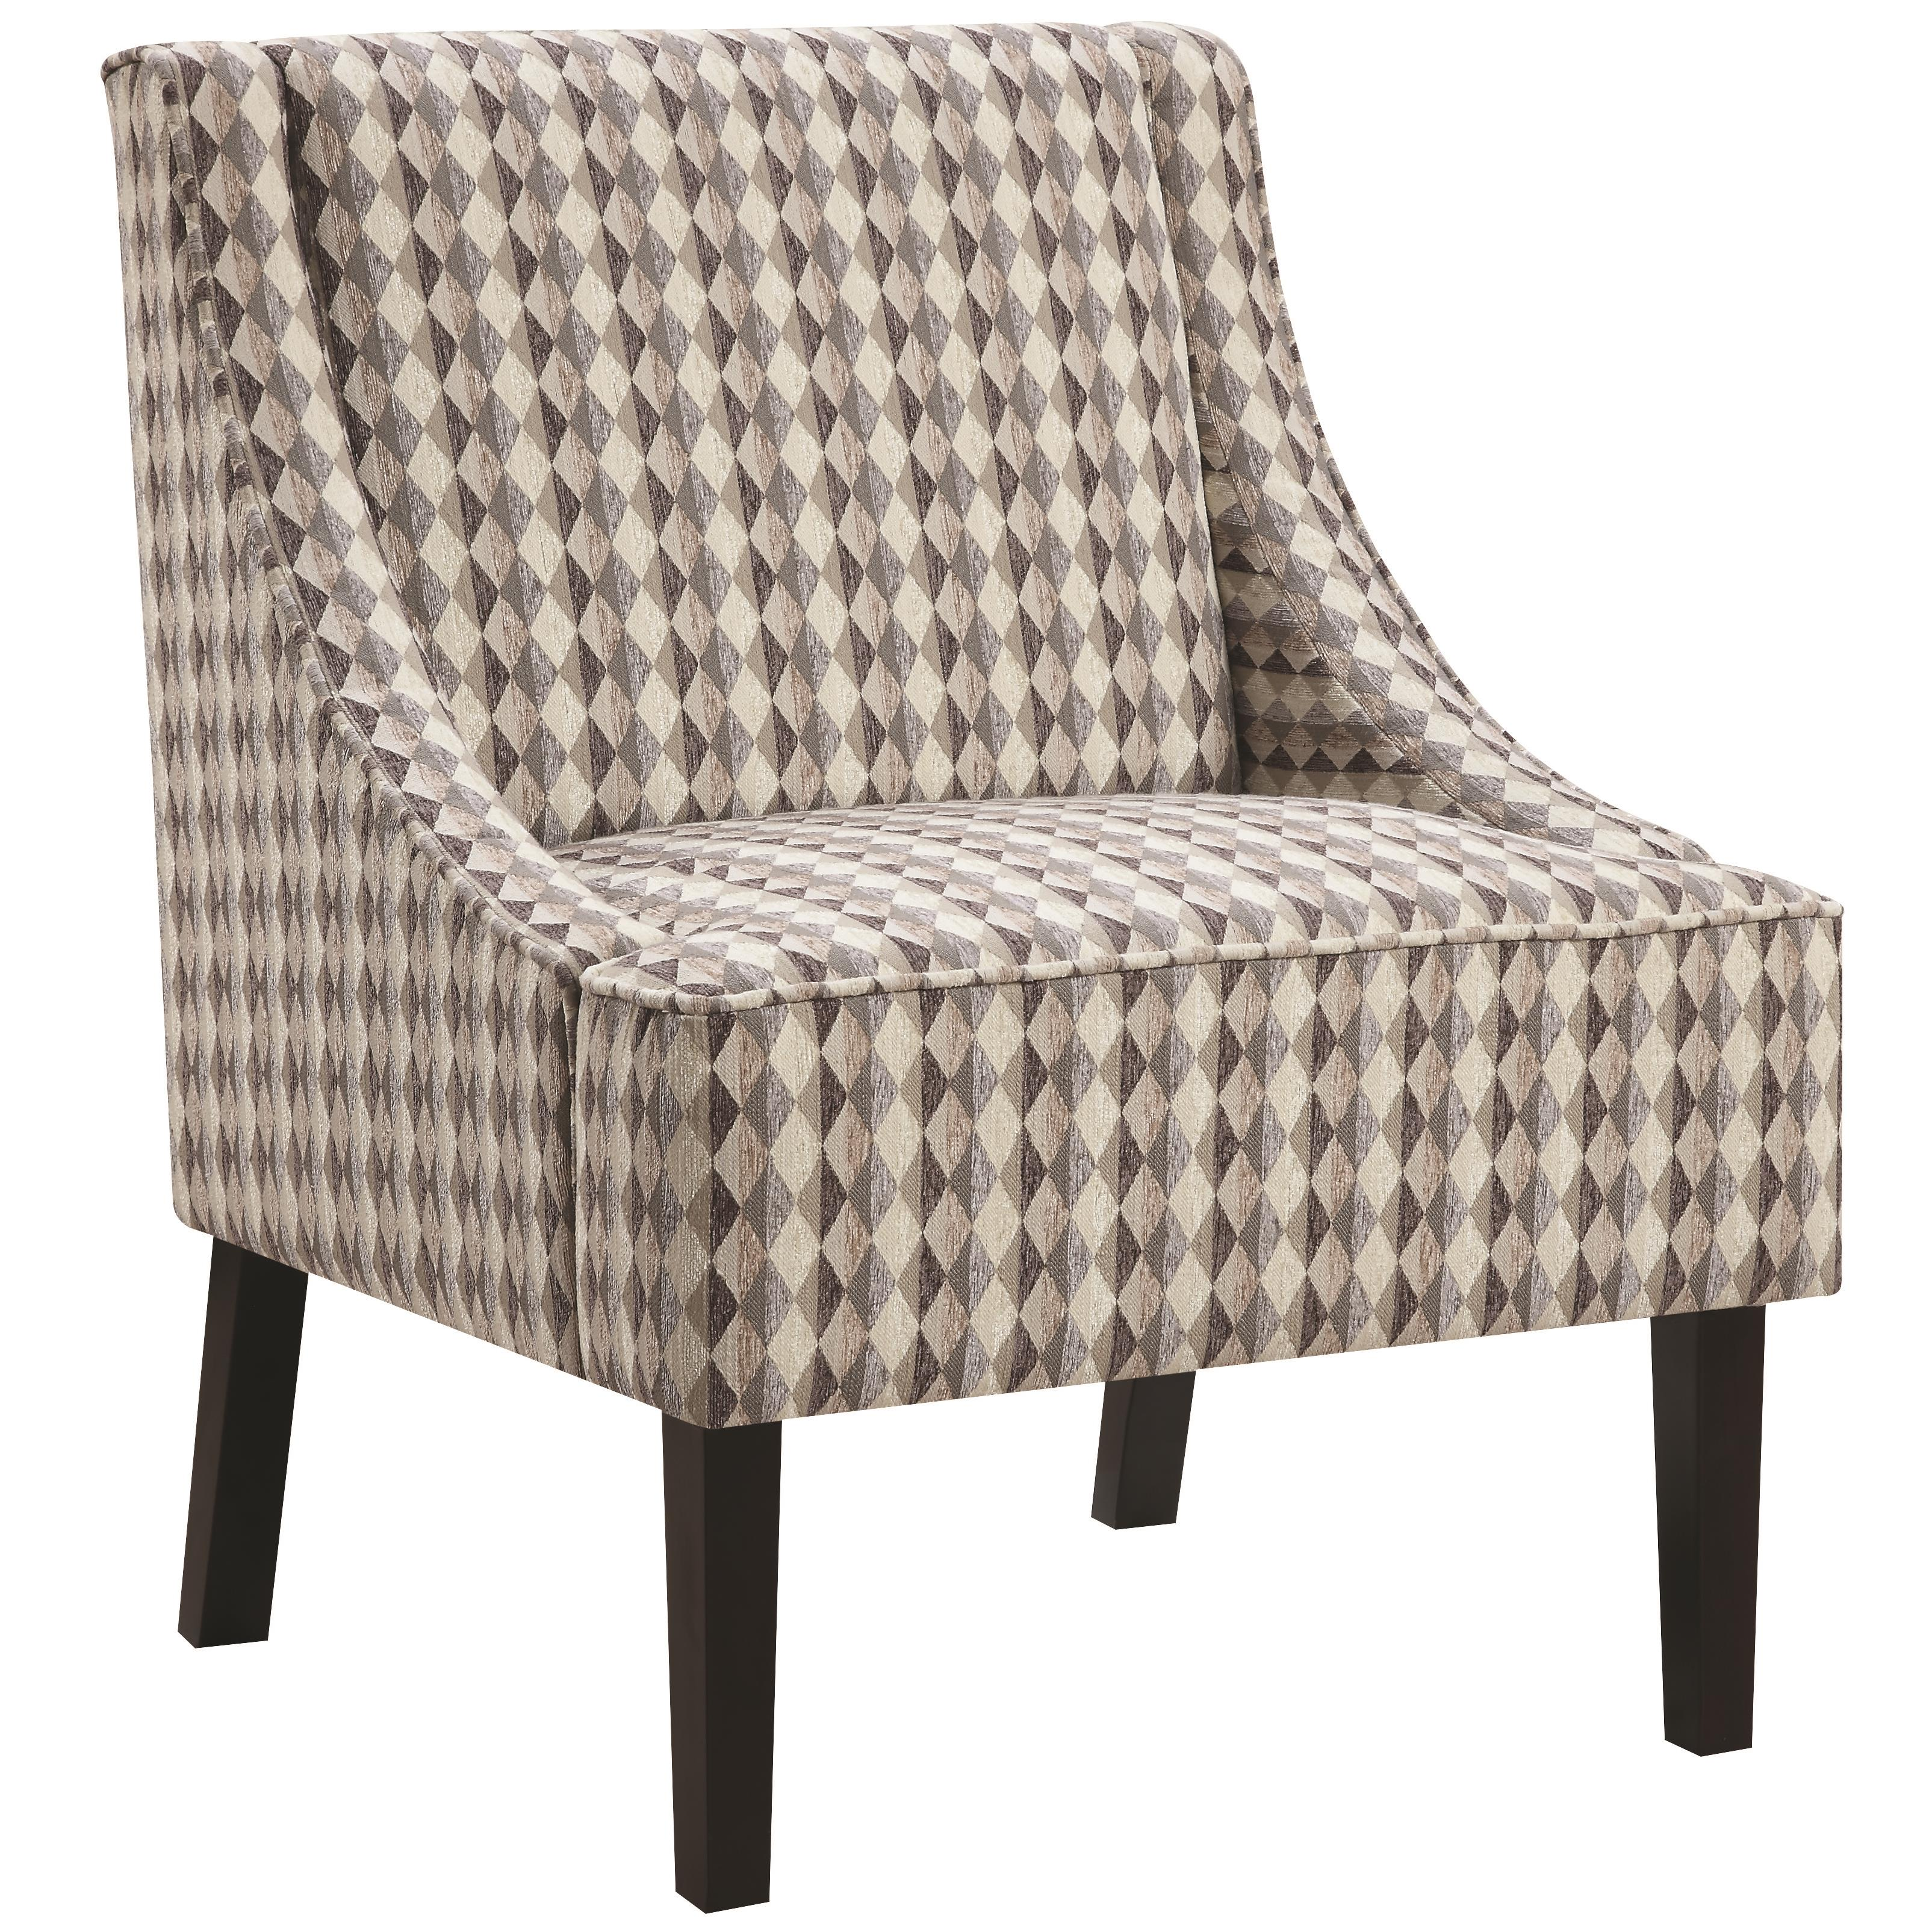 Coaster Accent Seating Accent Chair - Item Number: 902605